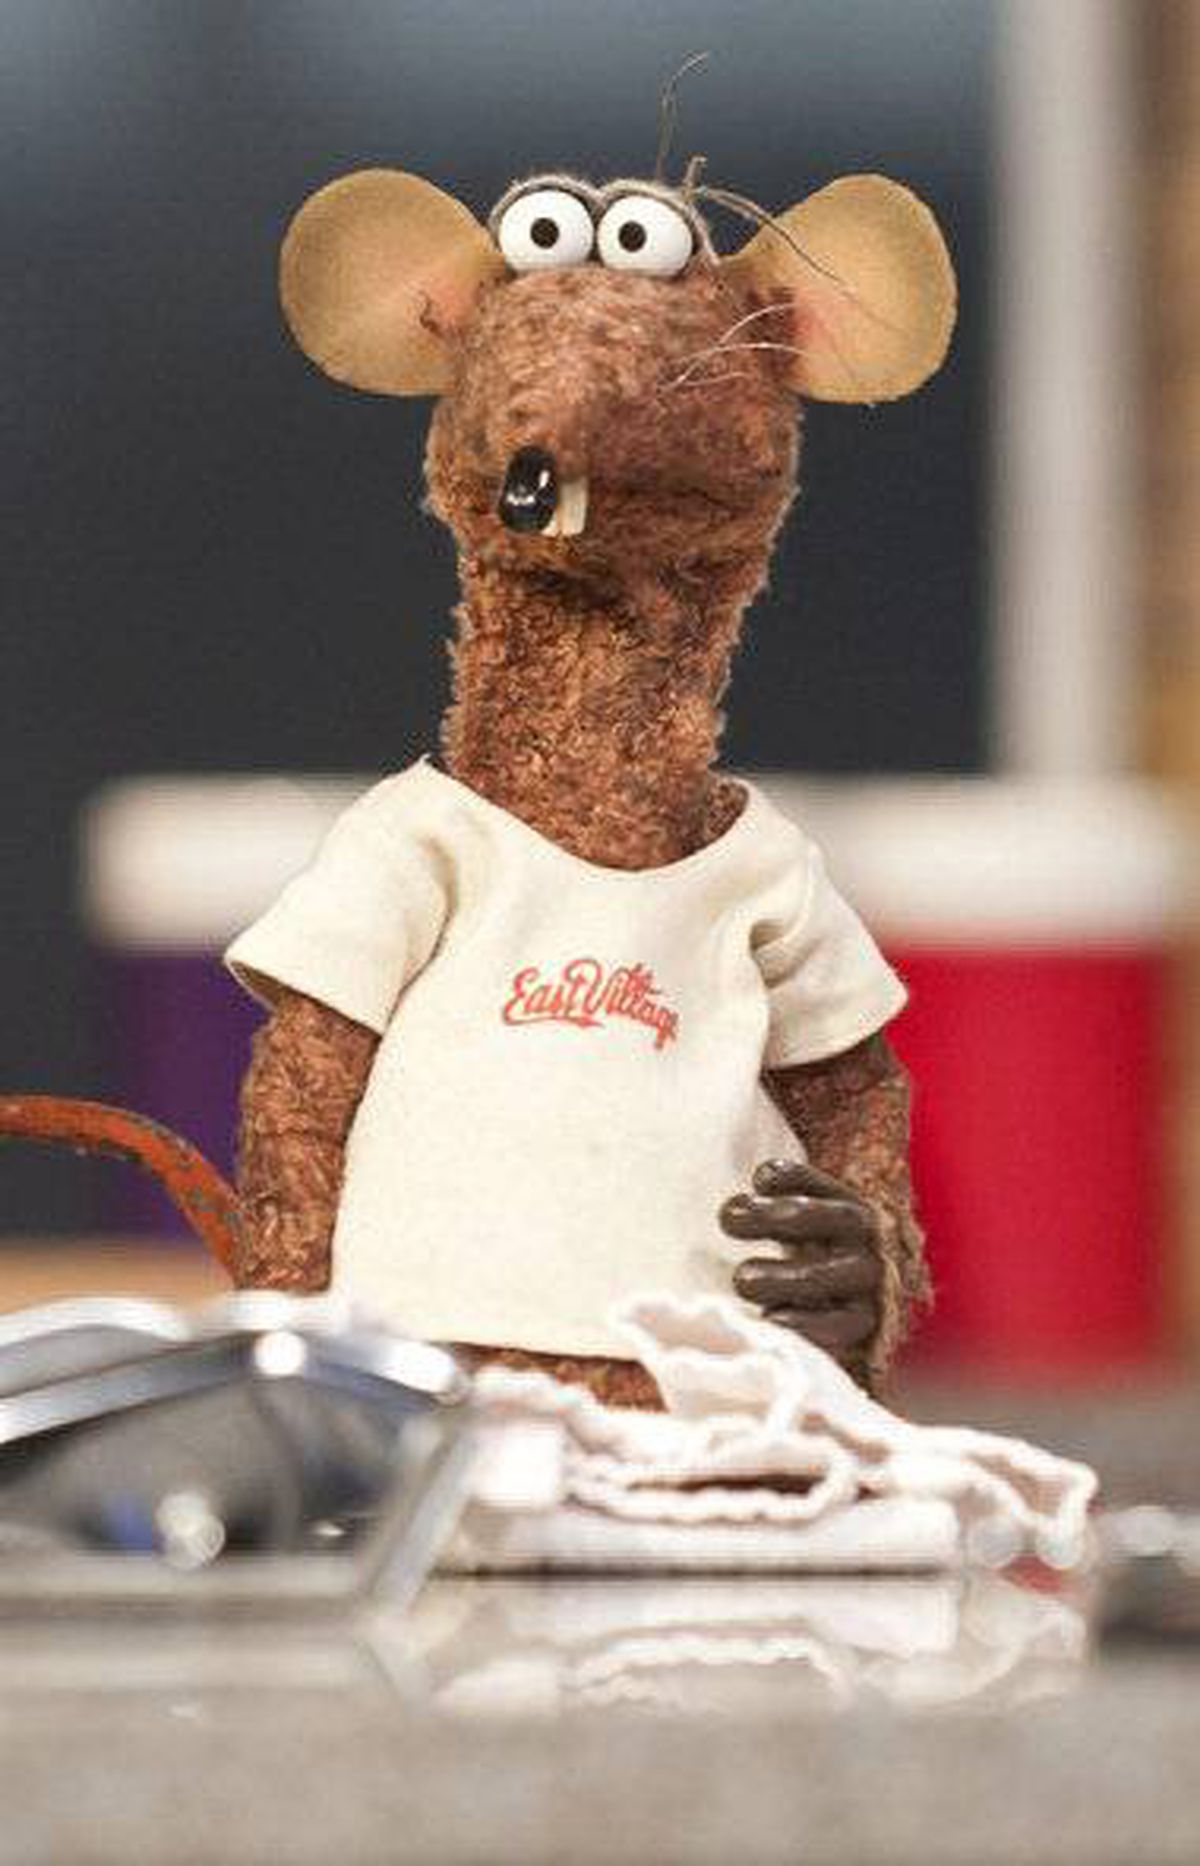 Rizzo the Rat during a cooking segment on 'This Morning' TV Program in London in February, 2012.